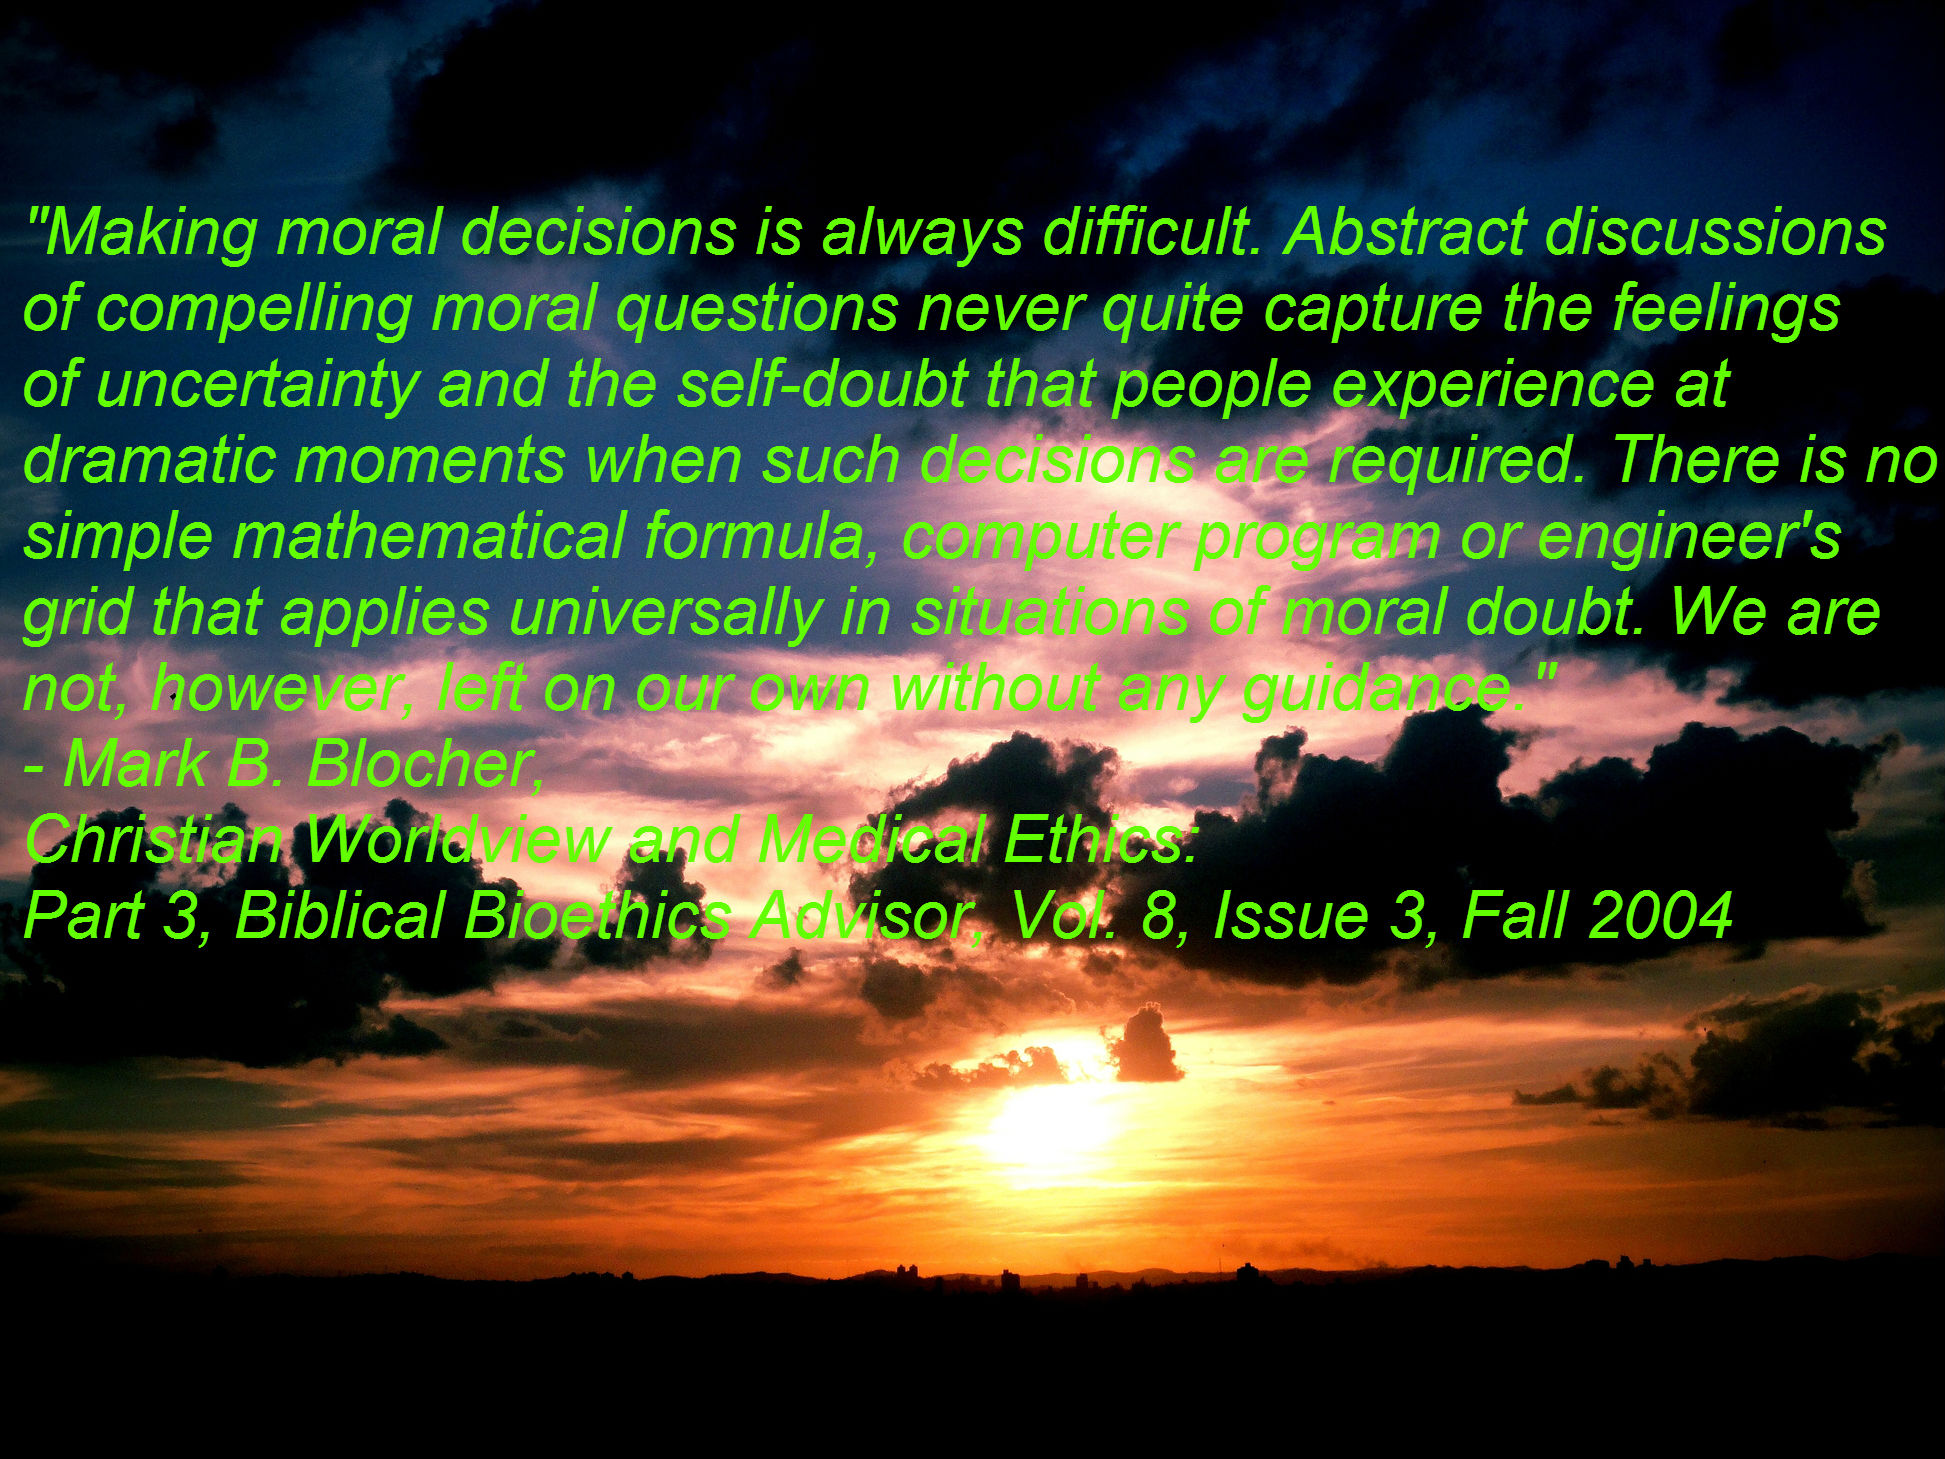 a christian worldview of morality and ethics How to make ethical decisions in a complex world  the bible in christian ethics  will err or misuse the bible in ethics the moral prescriptions of the bible .